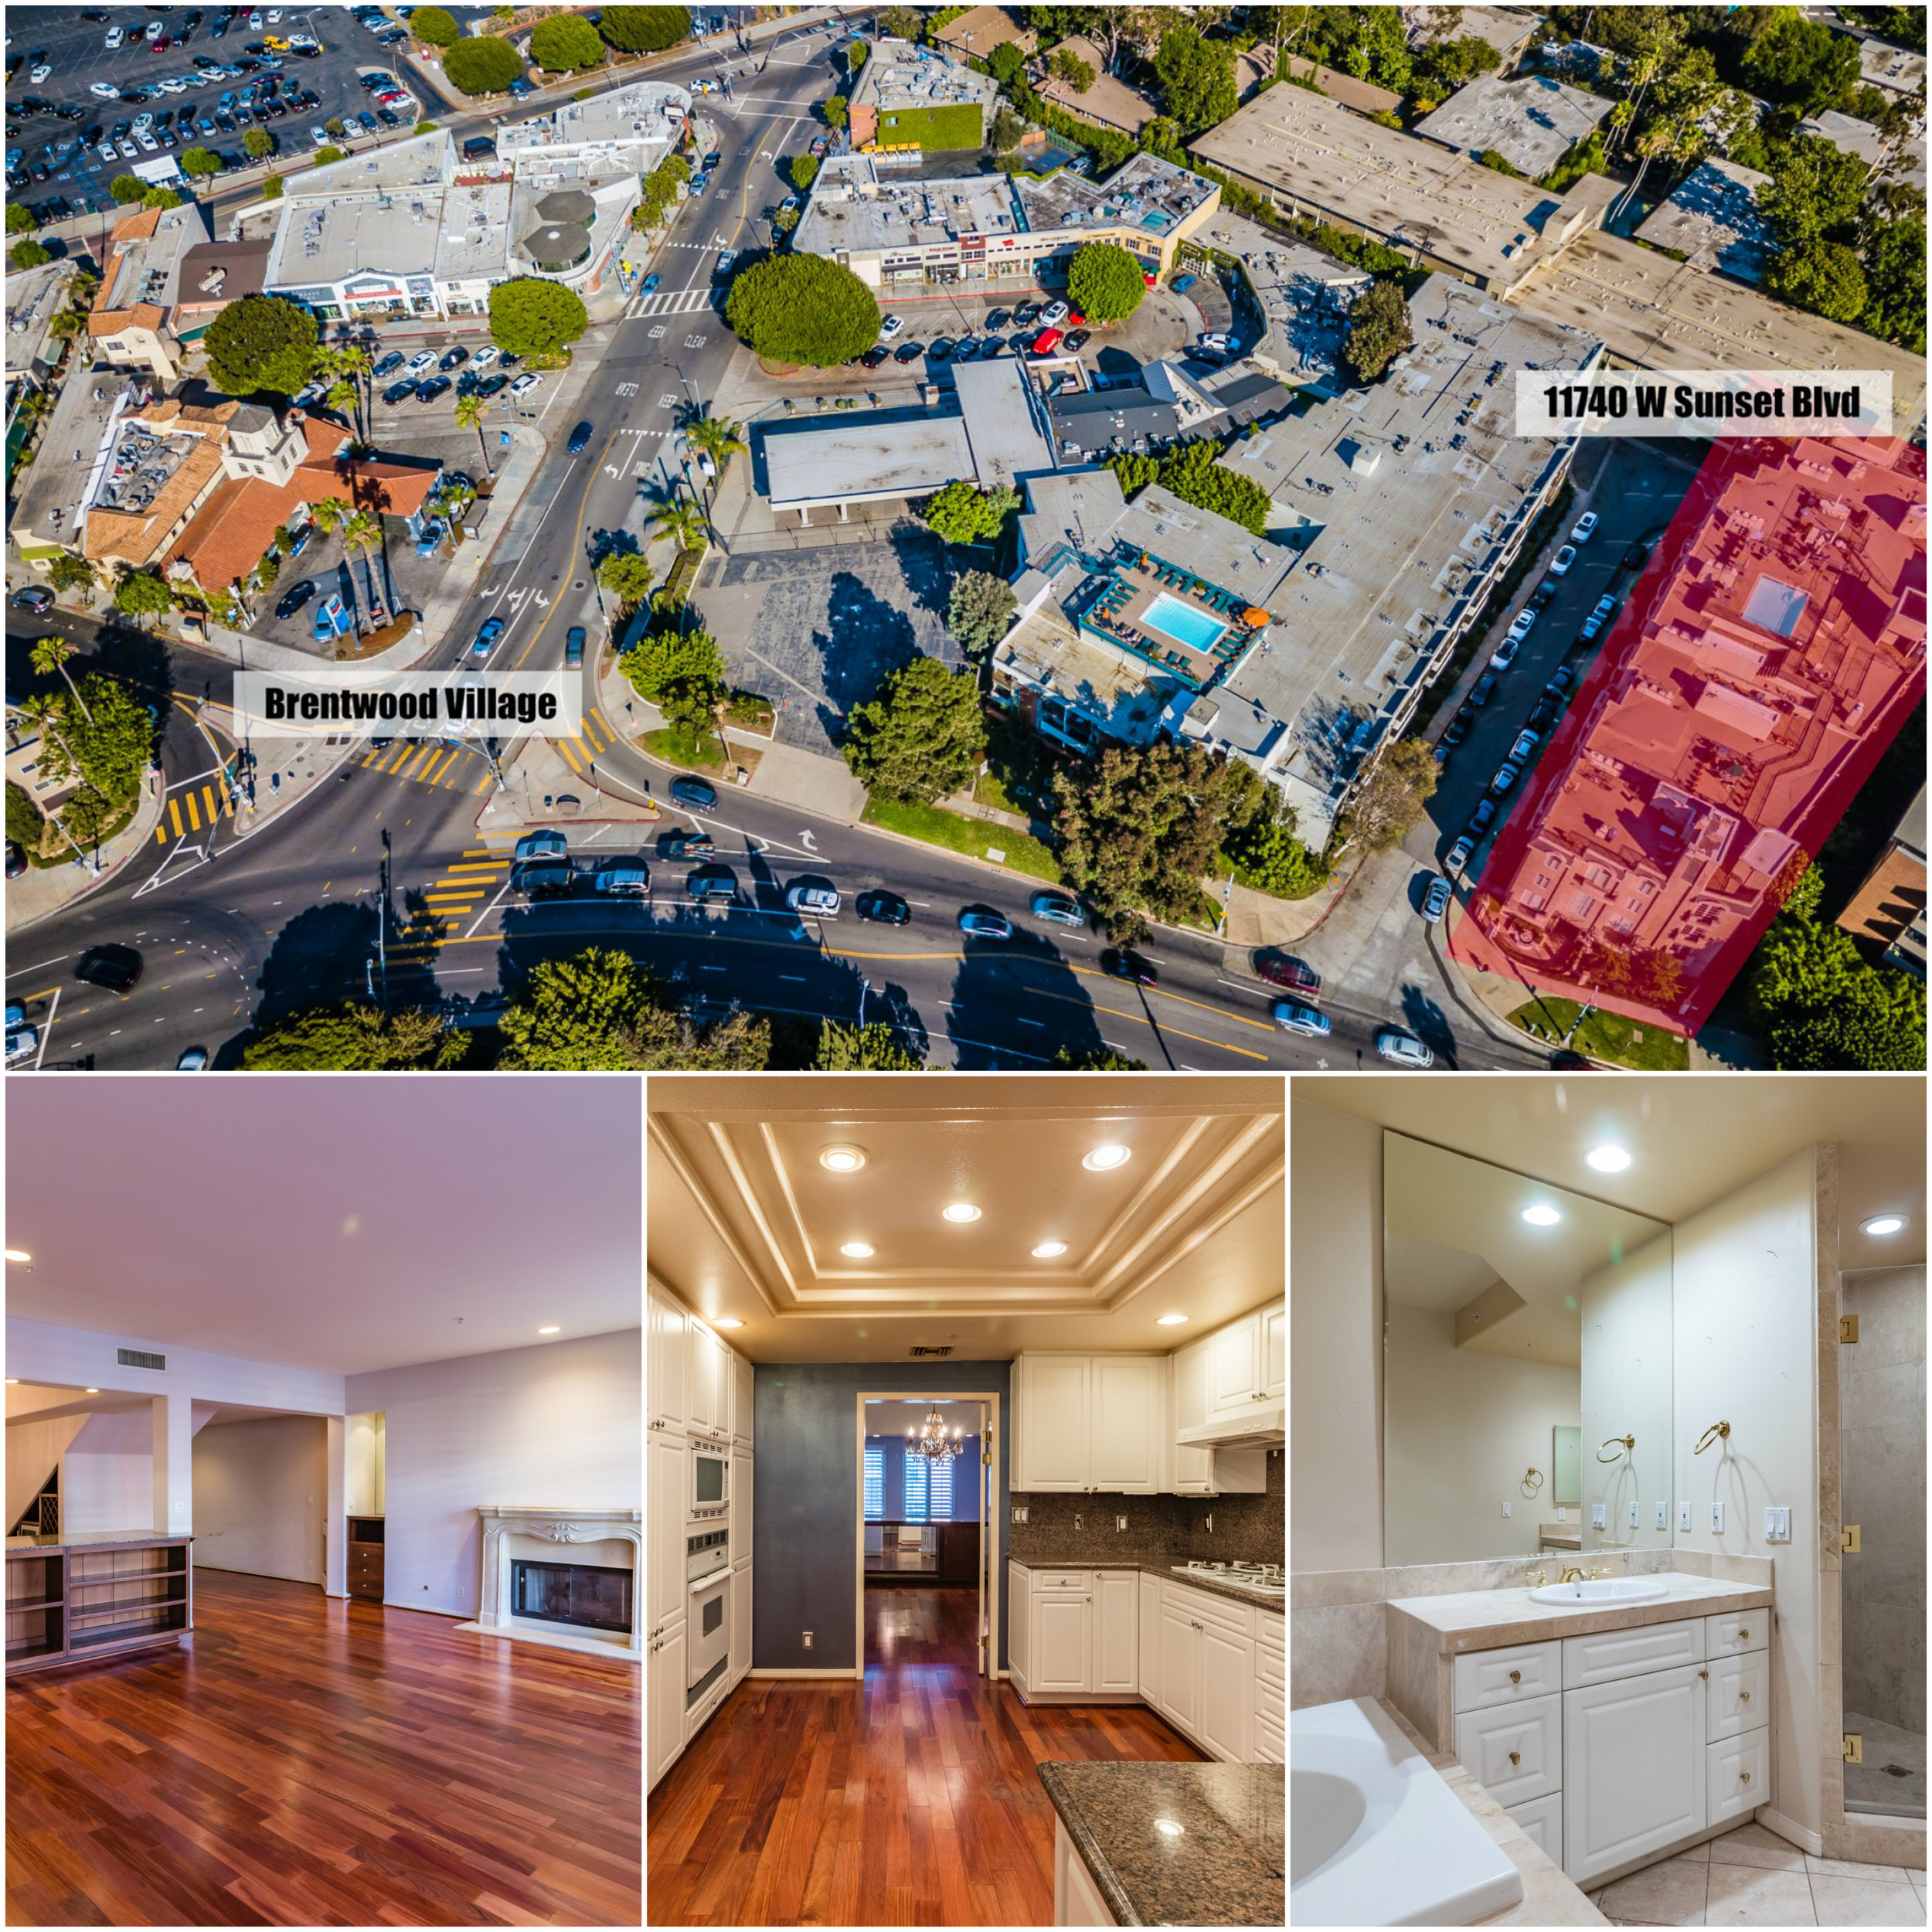 Real Estate Photography: 11740 W Sunset Blvd in Los Angeles. Listed by Nazy Yadkarim. Shot by Rob LeRoy.